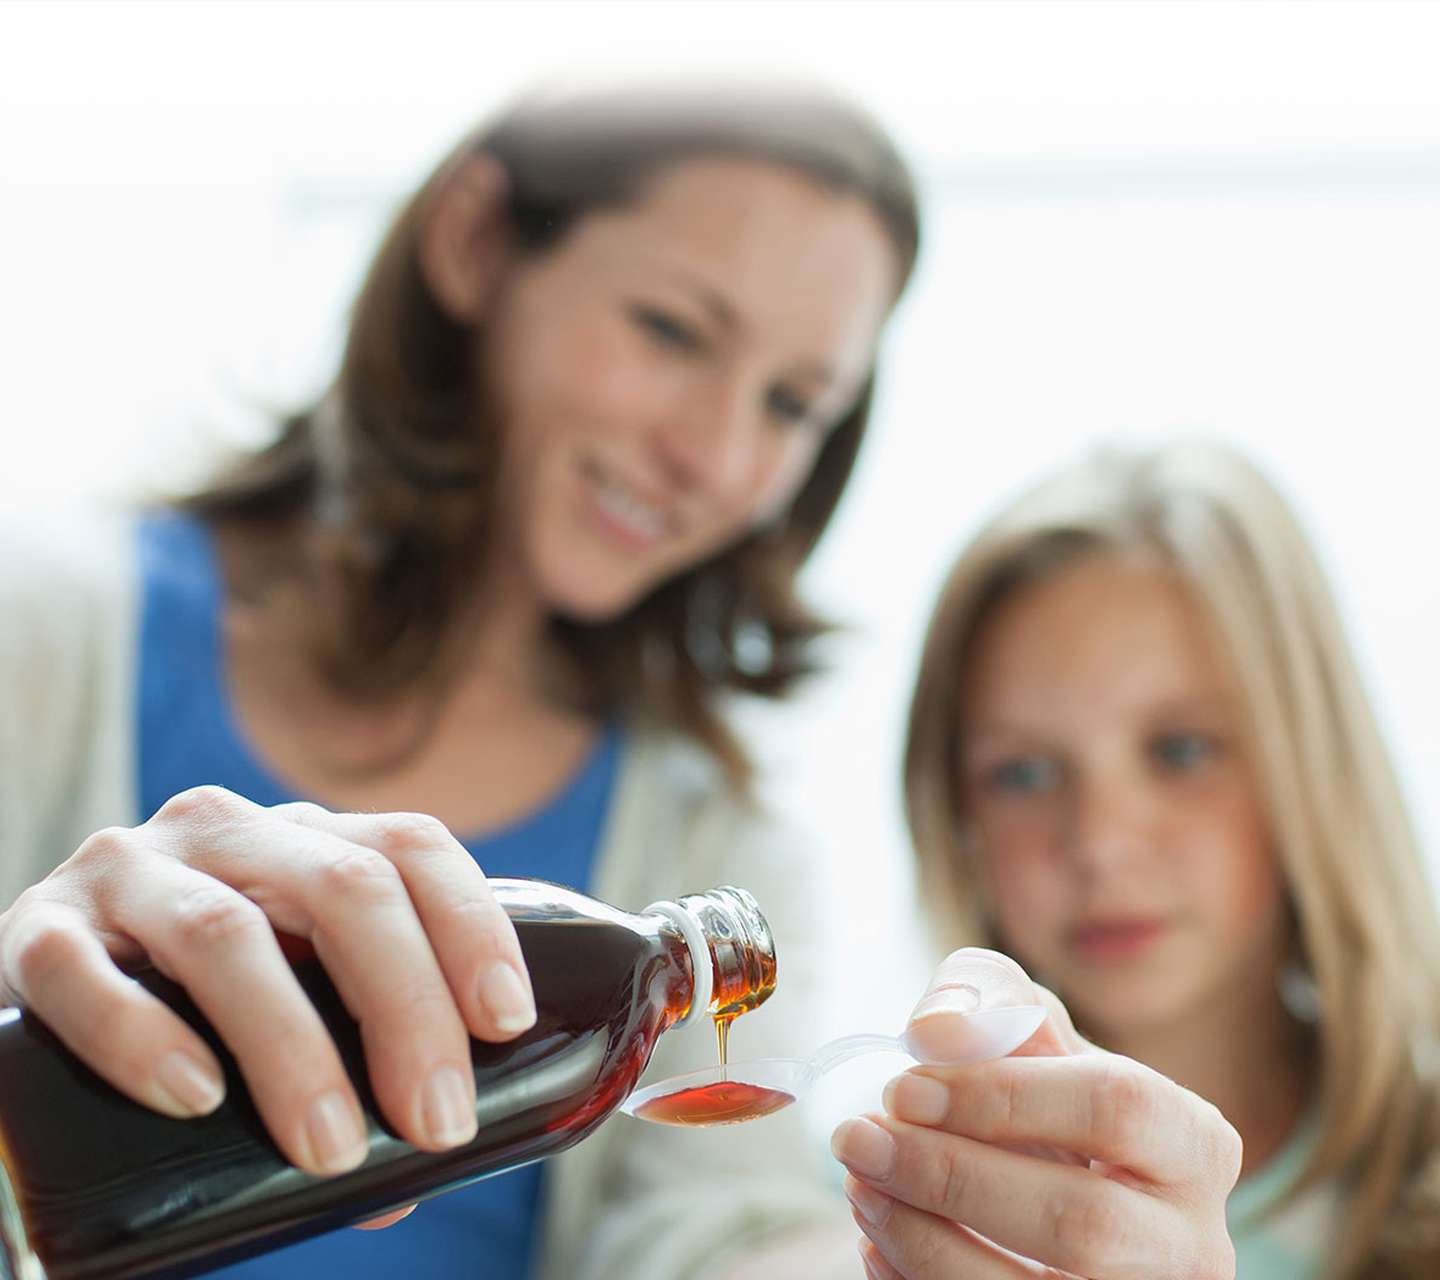 A woman pouring some liquid medication into a spoon about to give it to a child